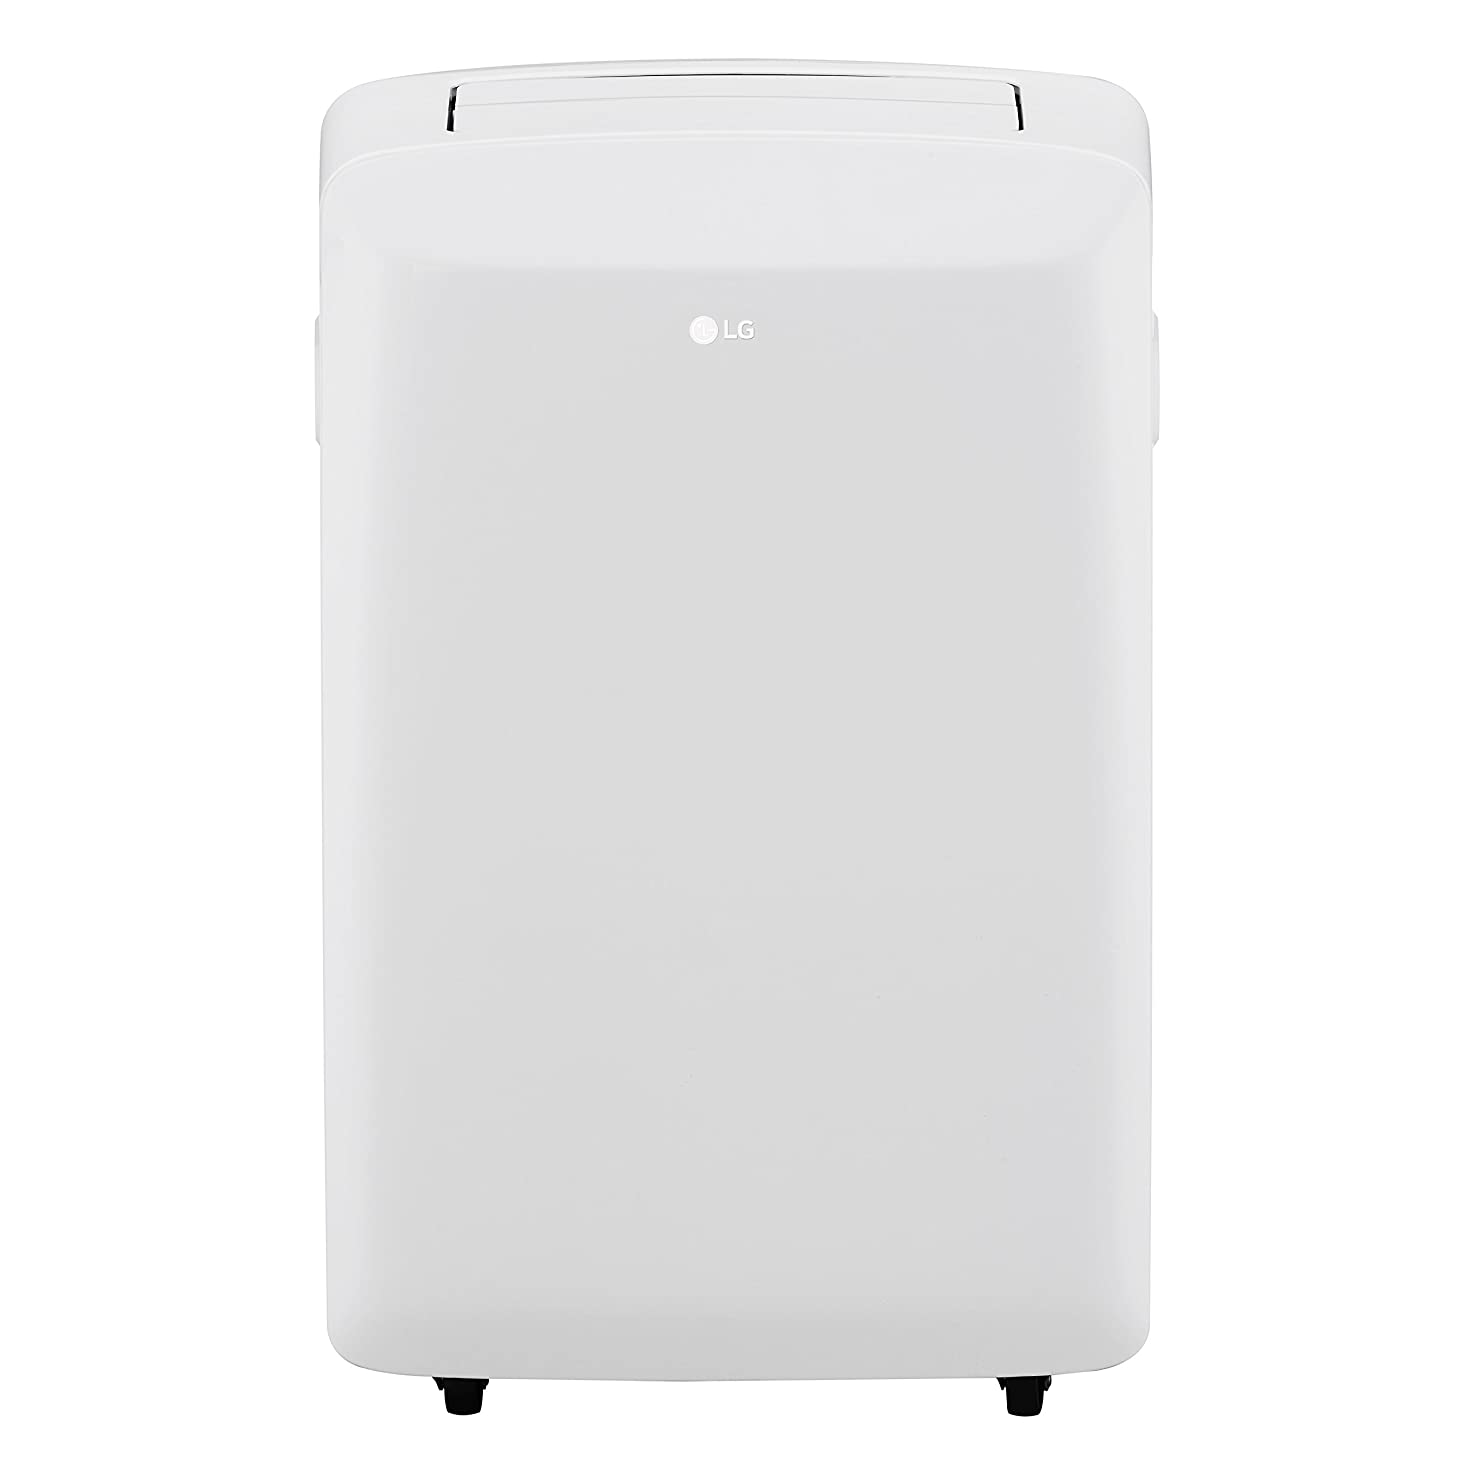 LG LP0817WSR 115V Portable Air Conditioner with Remote Control in White for Rooms up to 150-Sq. Ft. xutbyanekspzw4